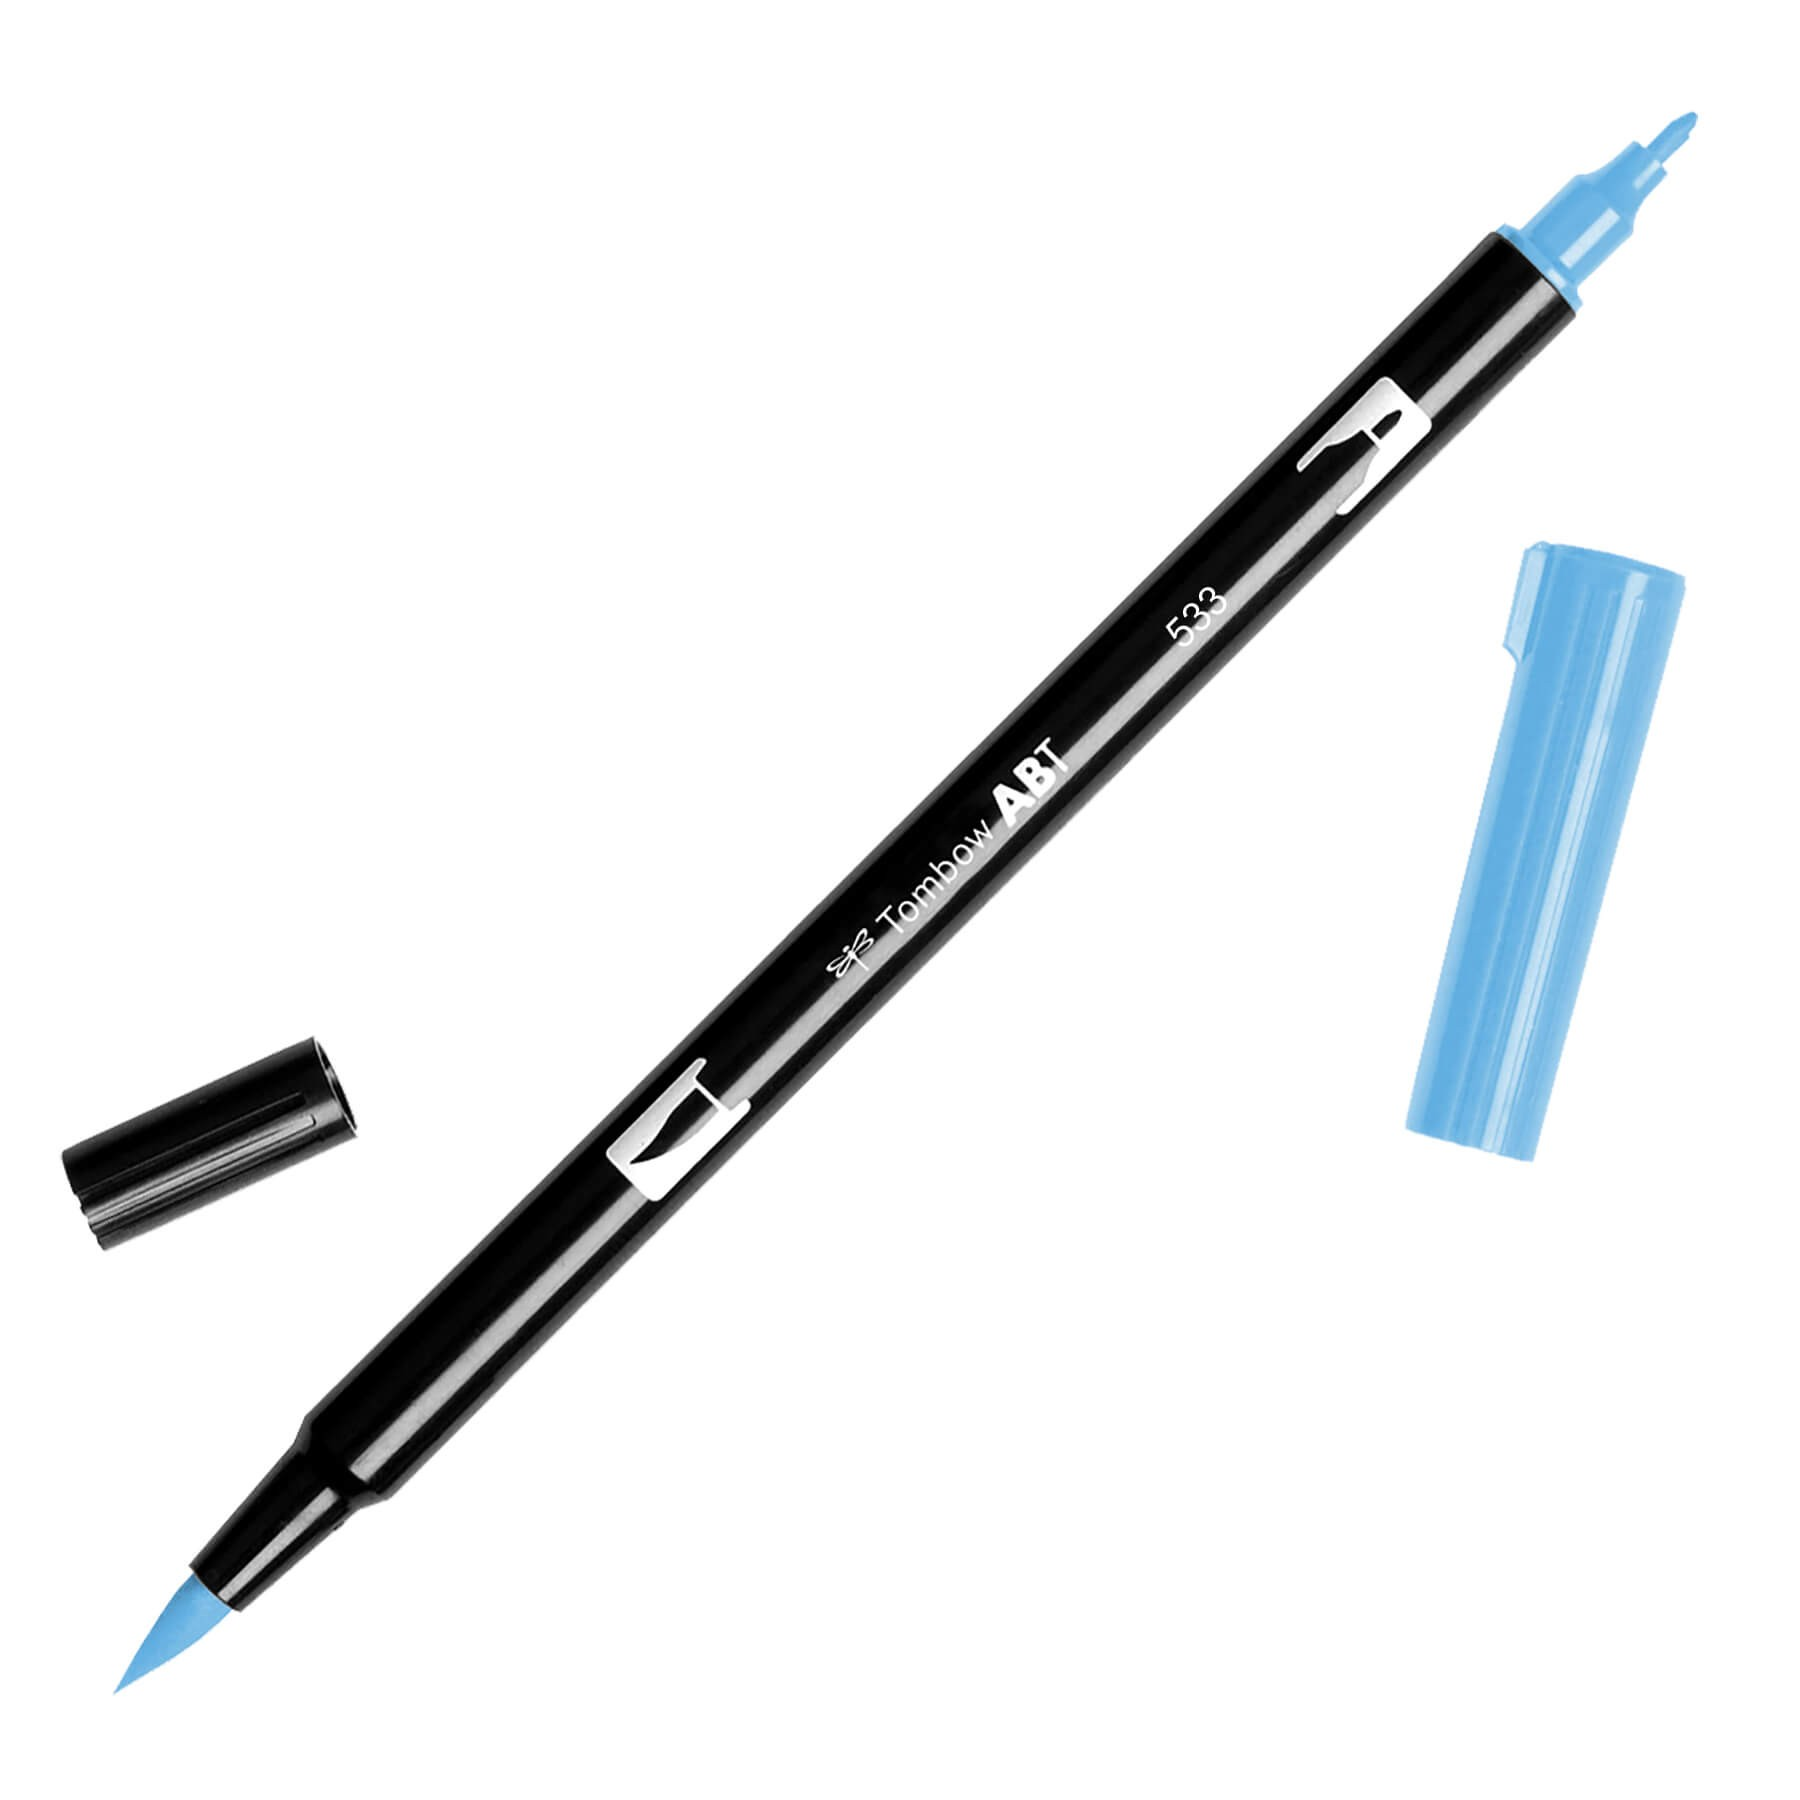 Feutre Tombow - 533 Peacock Blue